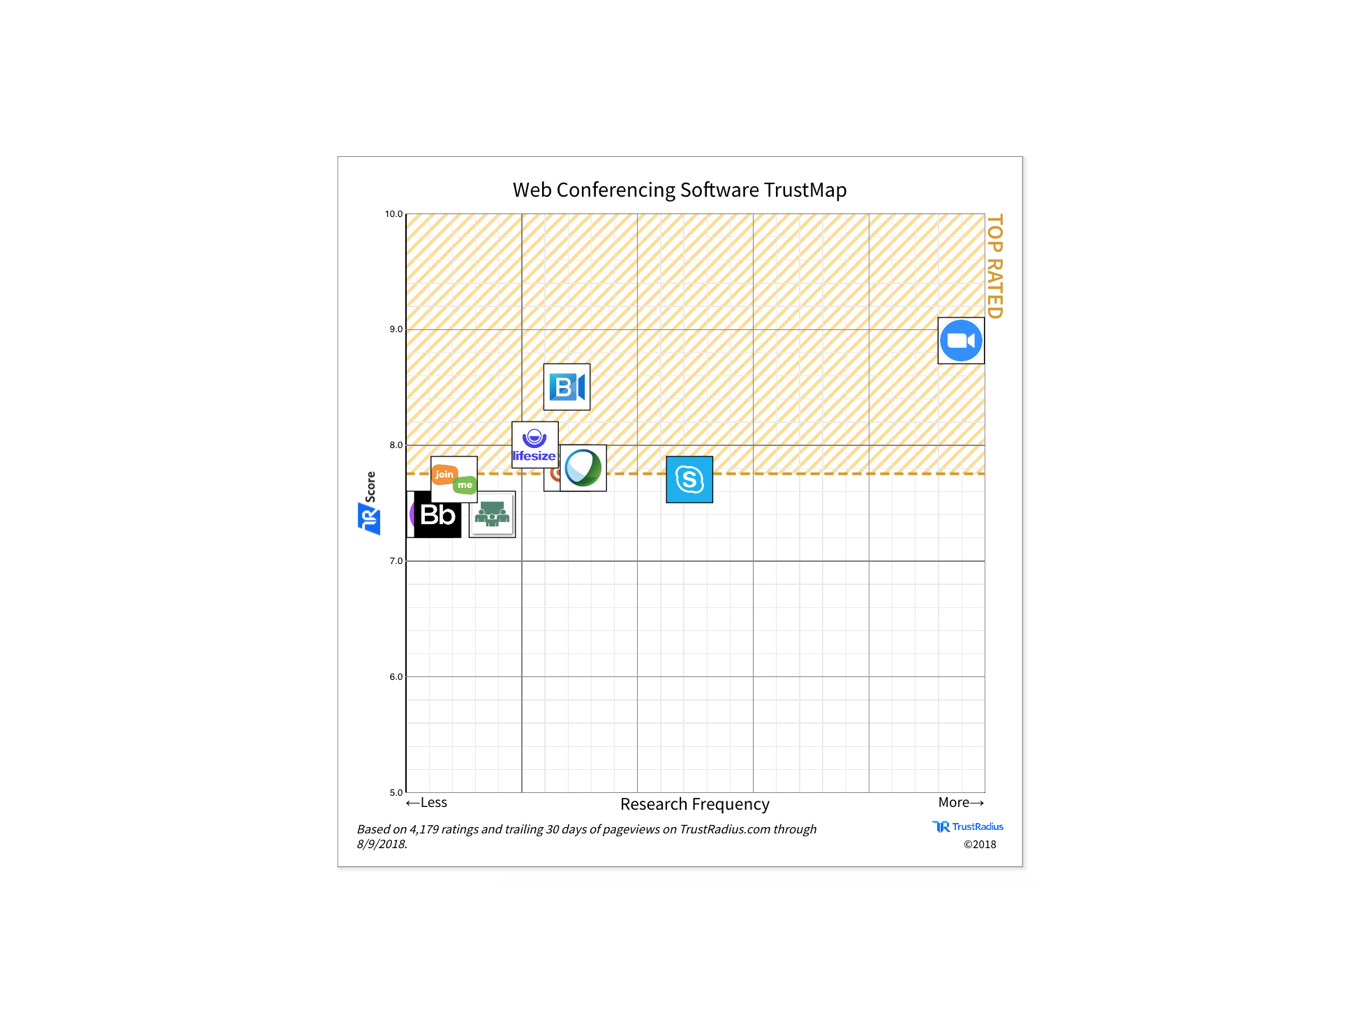 Zoom Leads Web Conferencing Category on TrustRadius - Zoom Blog